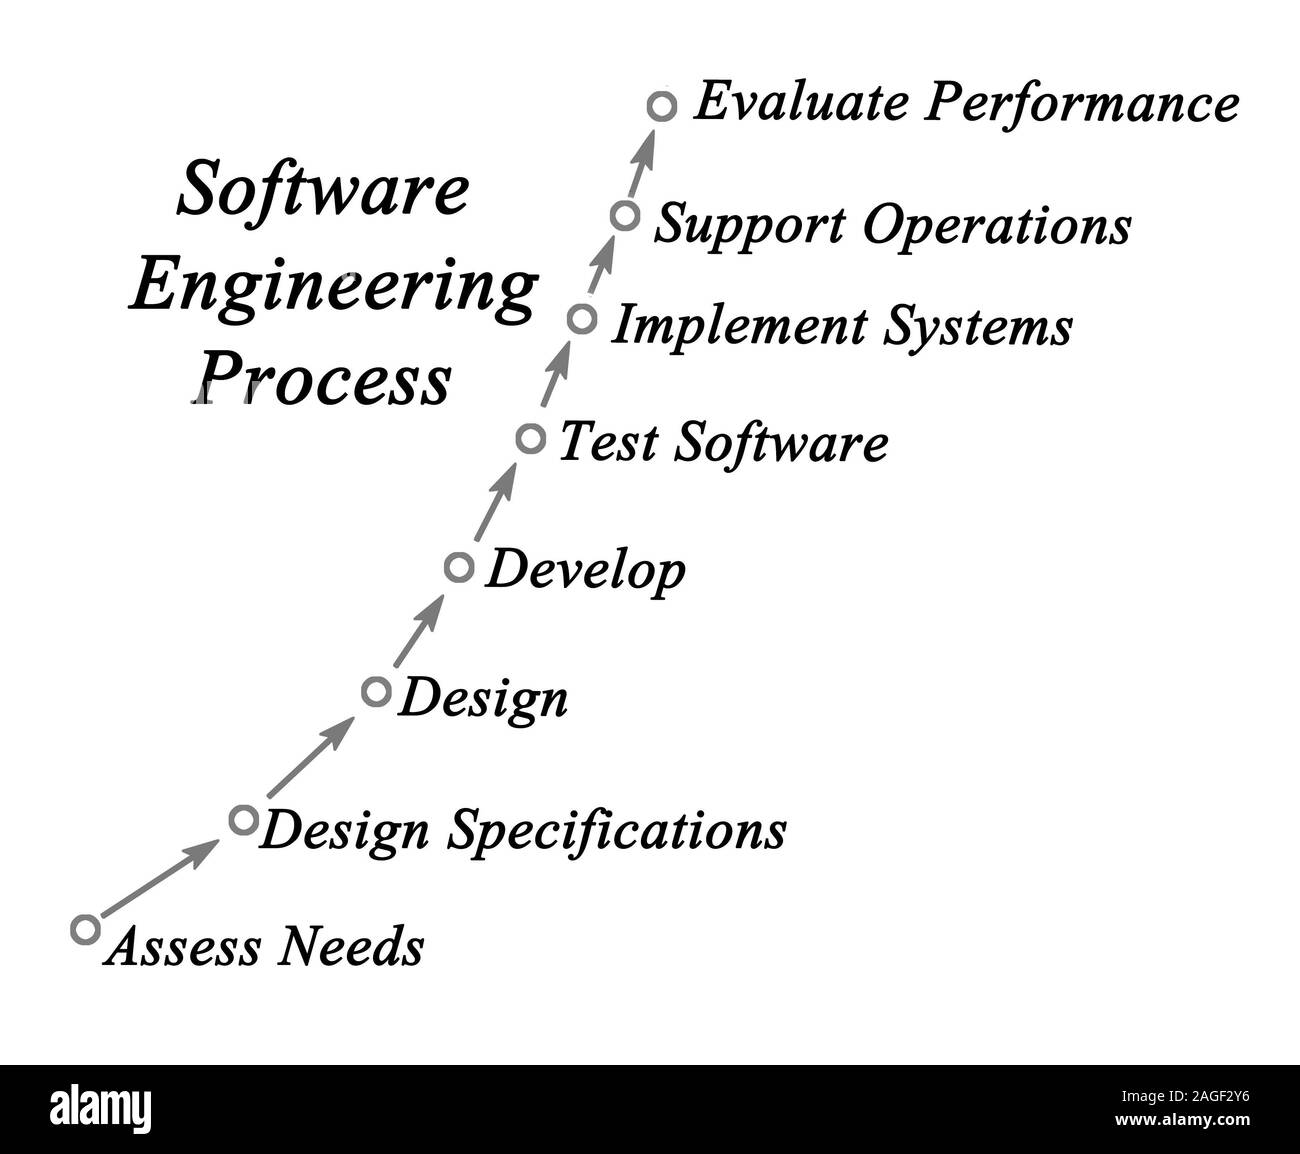 Software Engineering Process Stock Photo Alamy